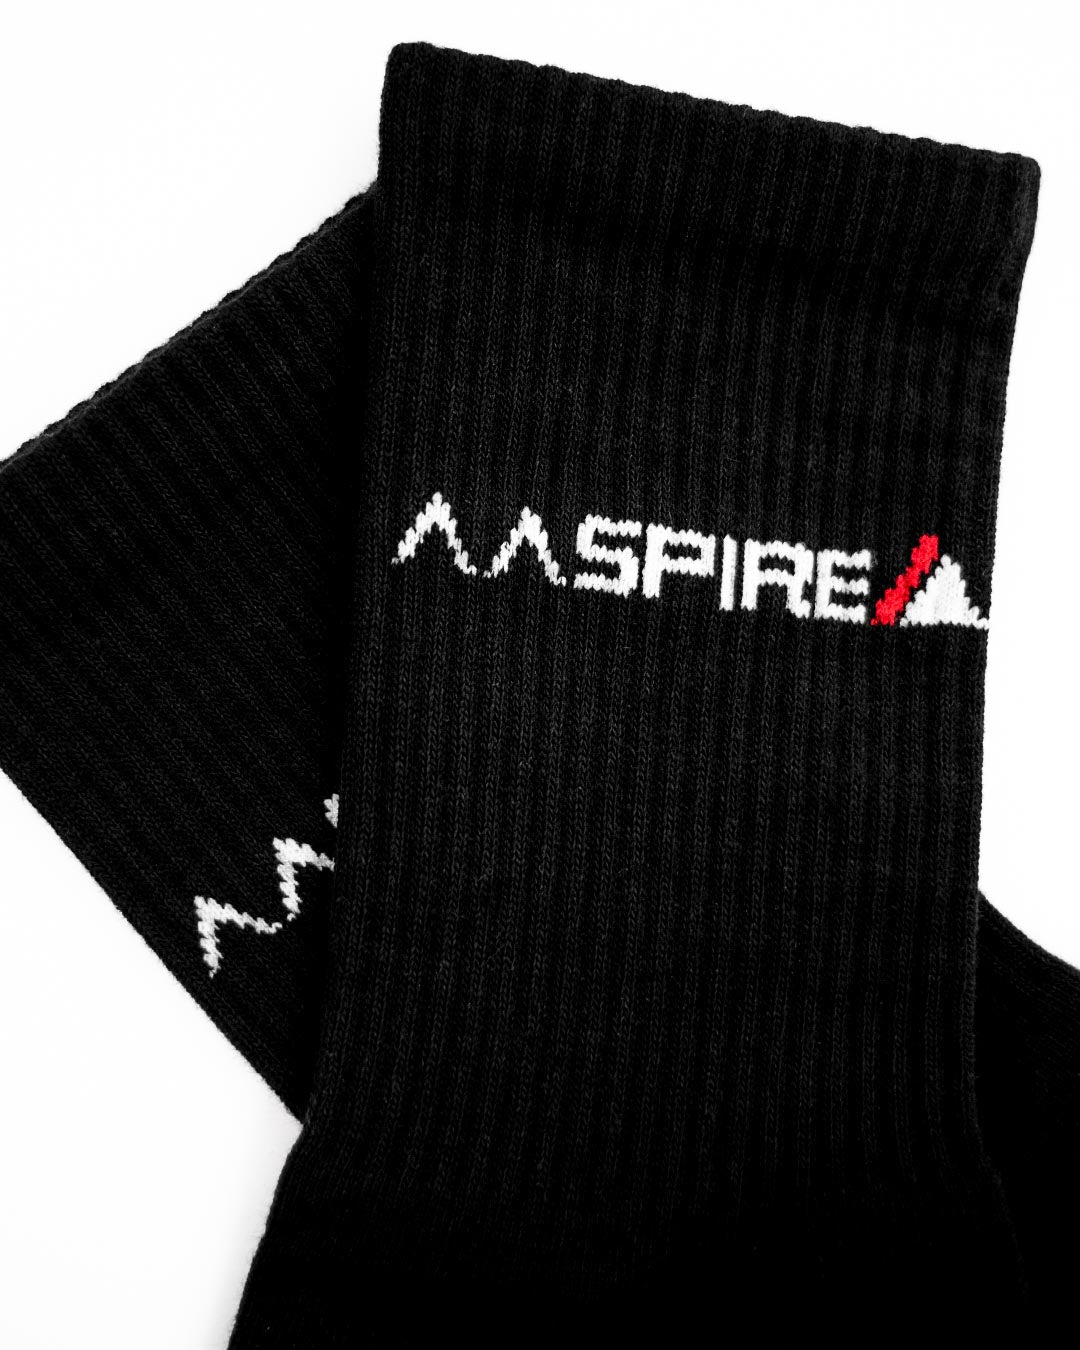 AASPIRE ORIGINAL 2 PACK SOCKS (BLACK)